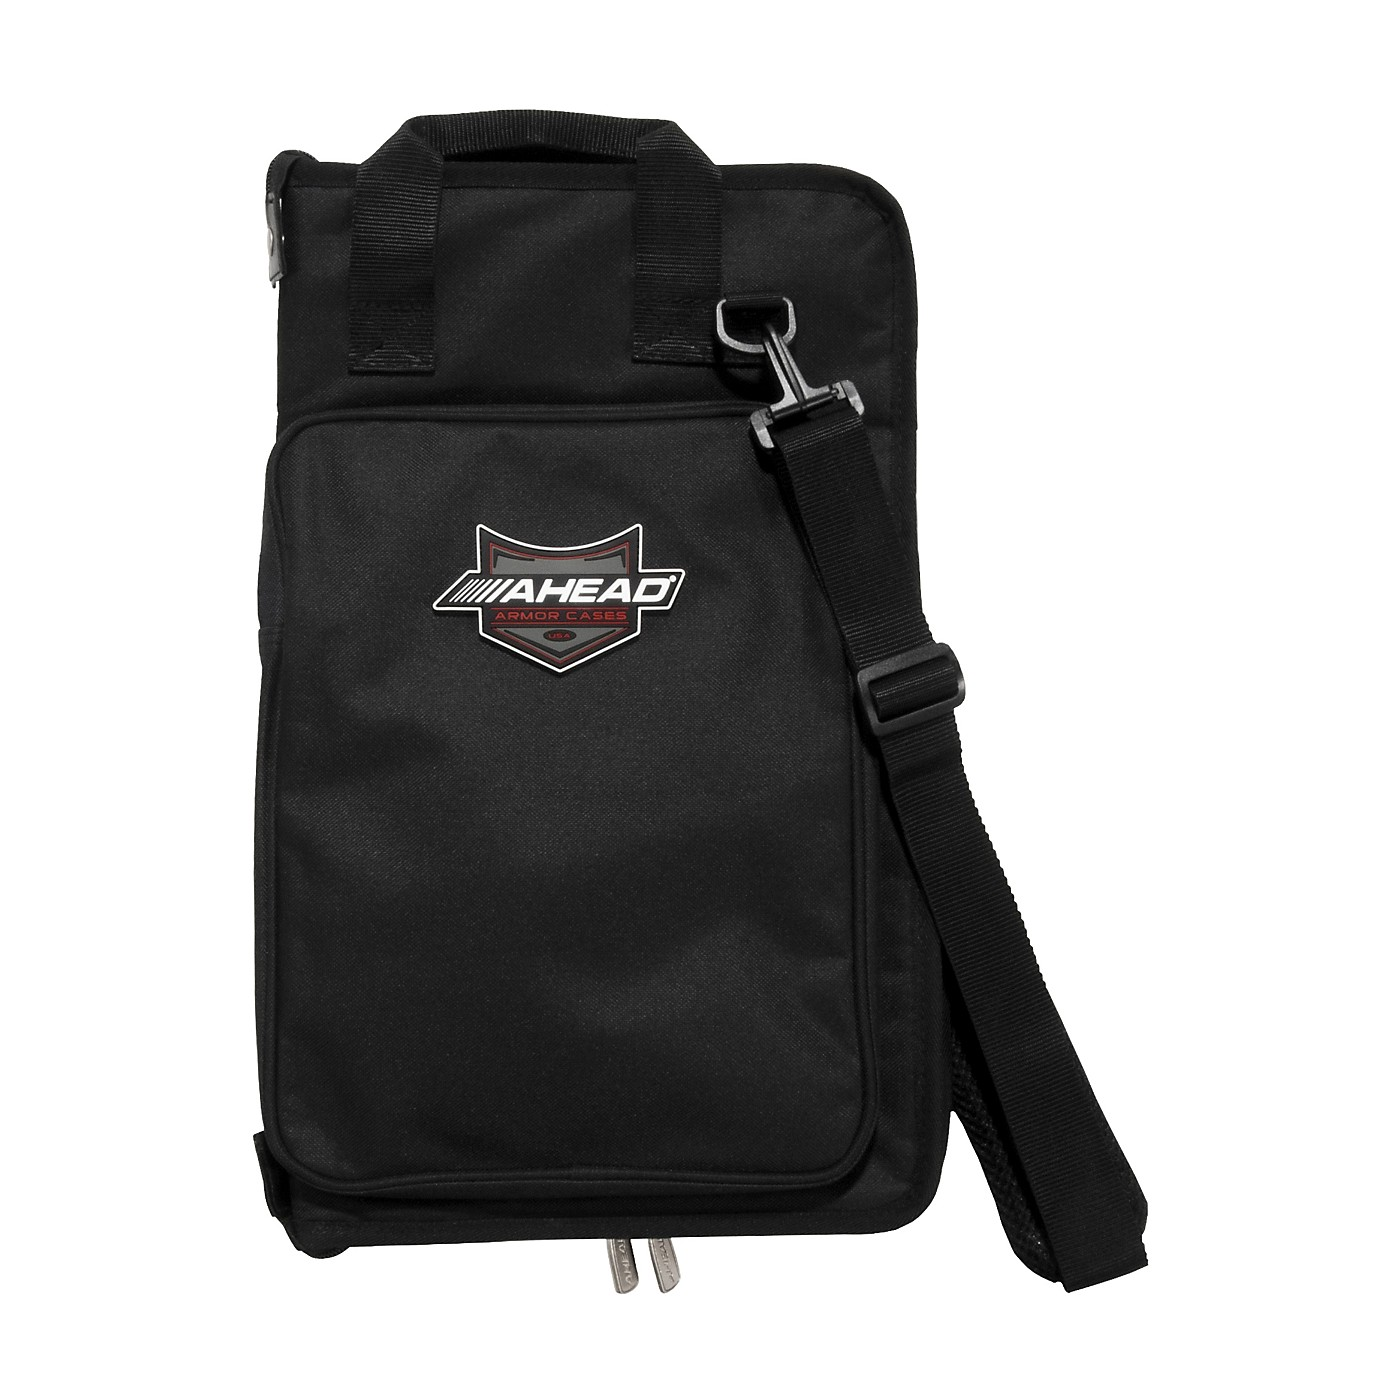 Ahead Armor Cases Jumbo Stick Case with Shoulder Strap thumbnail